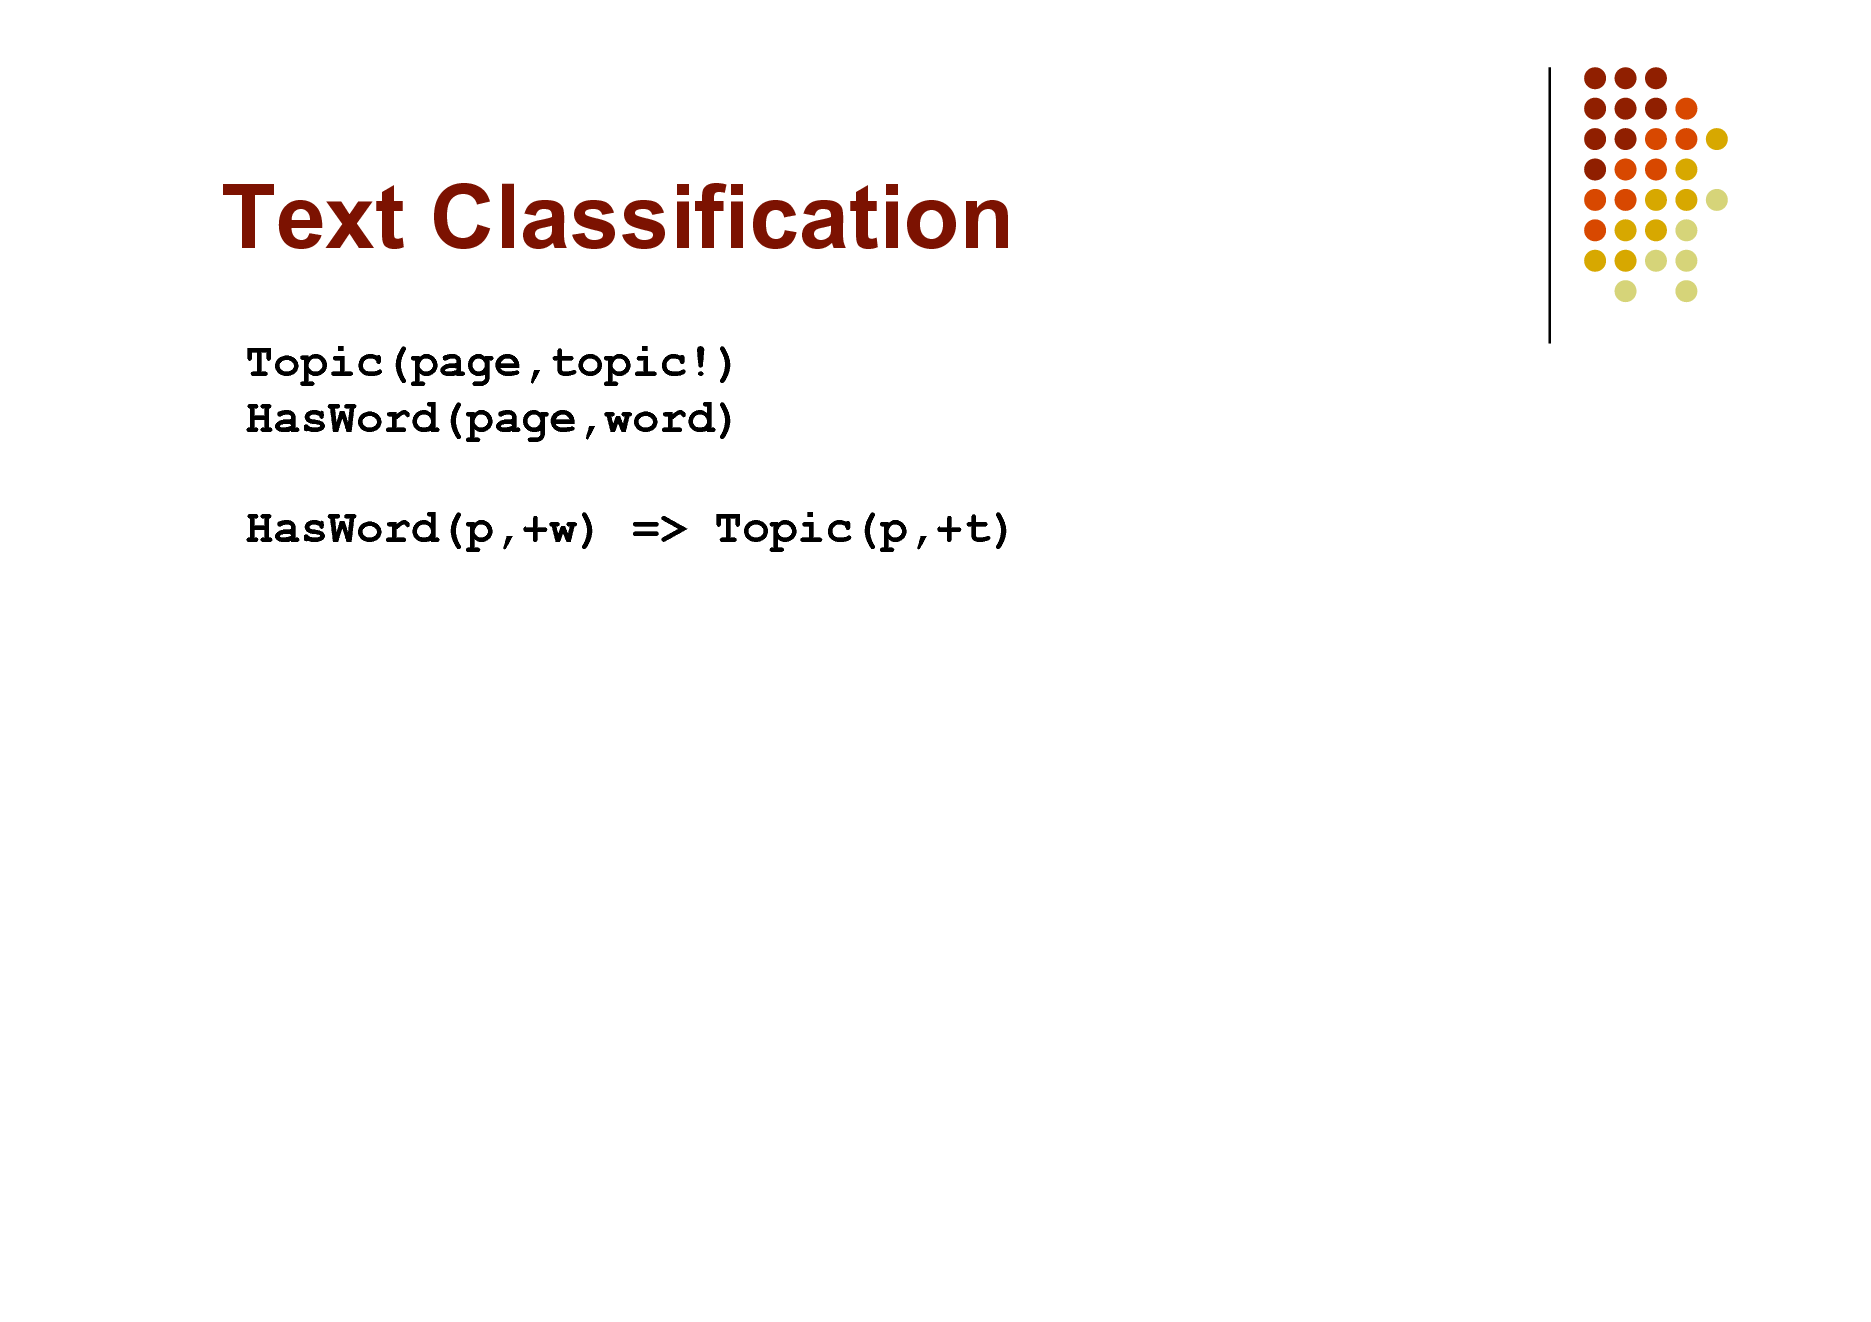 Slide: Text Classification Topic(page,topic!) HasWord(page,word) HasWord(p,+w) => Topic(p,+t)